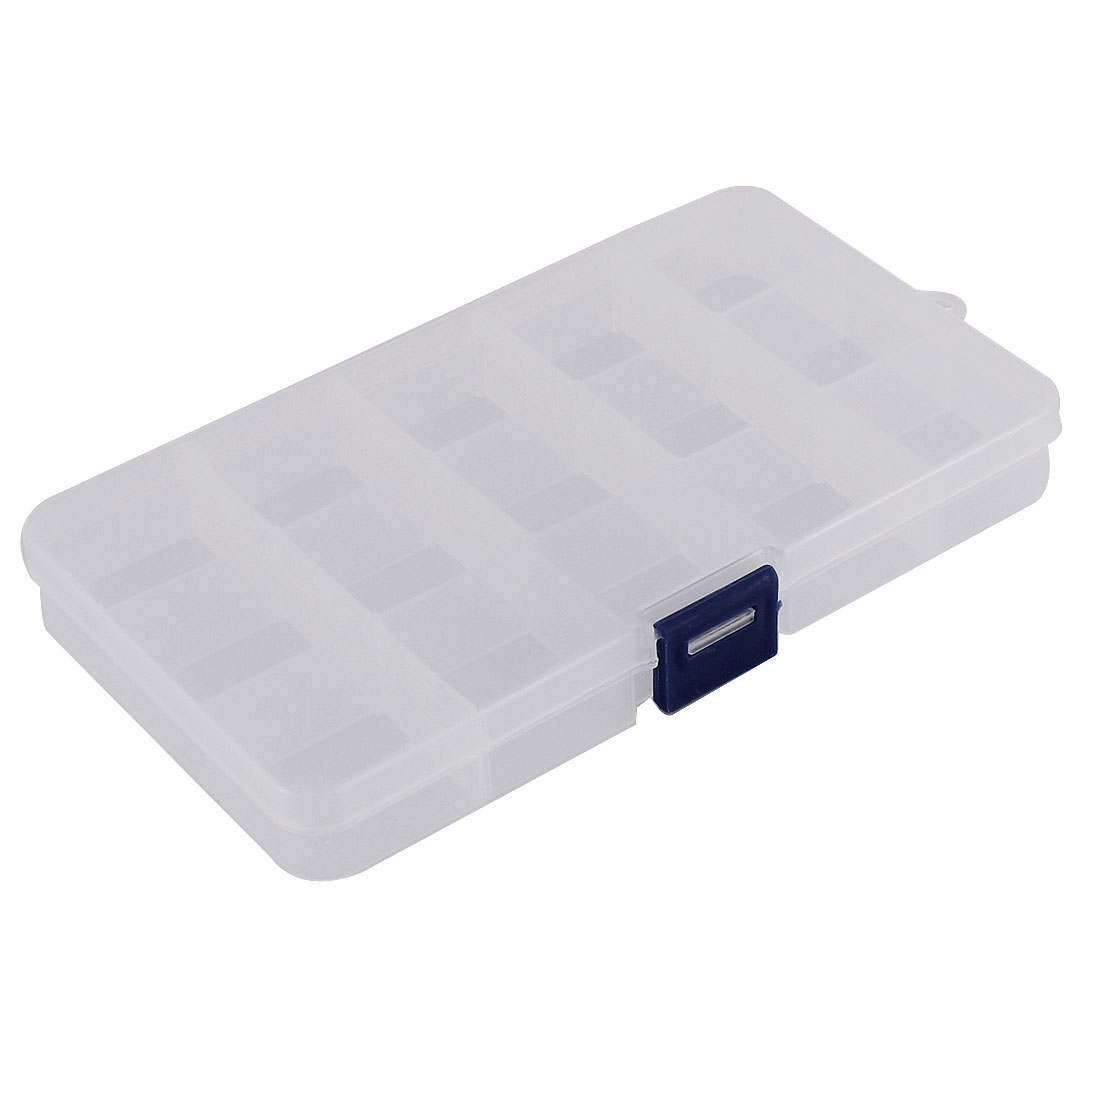 Medicine Jewellery Plastic 15 Slots Storage Box Case Organizer Container Clear